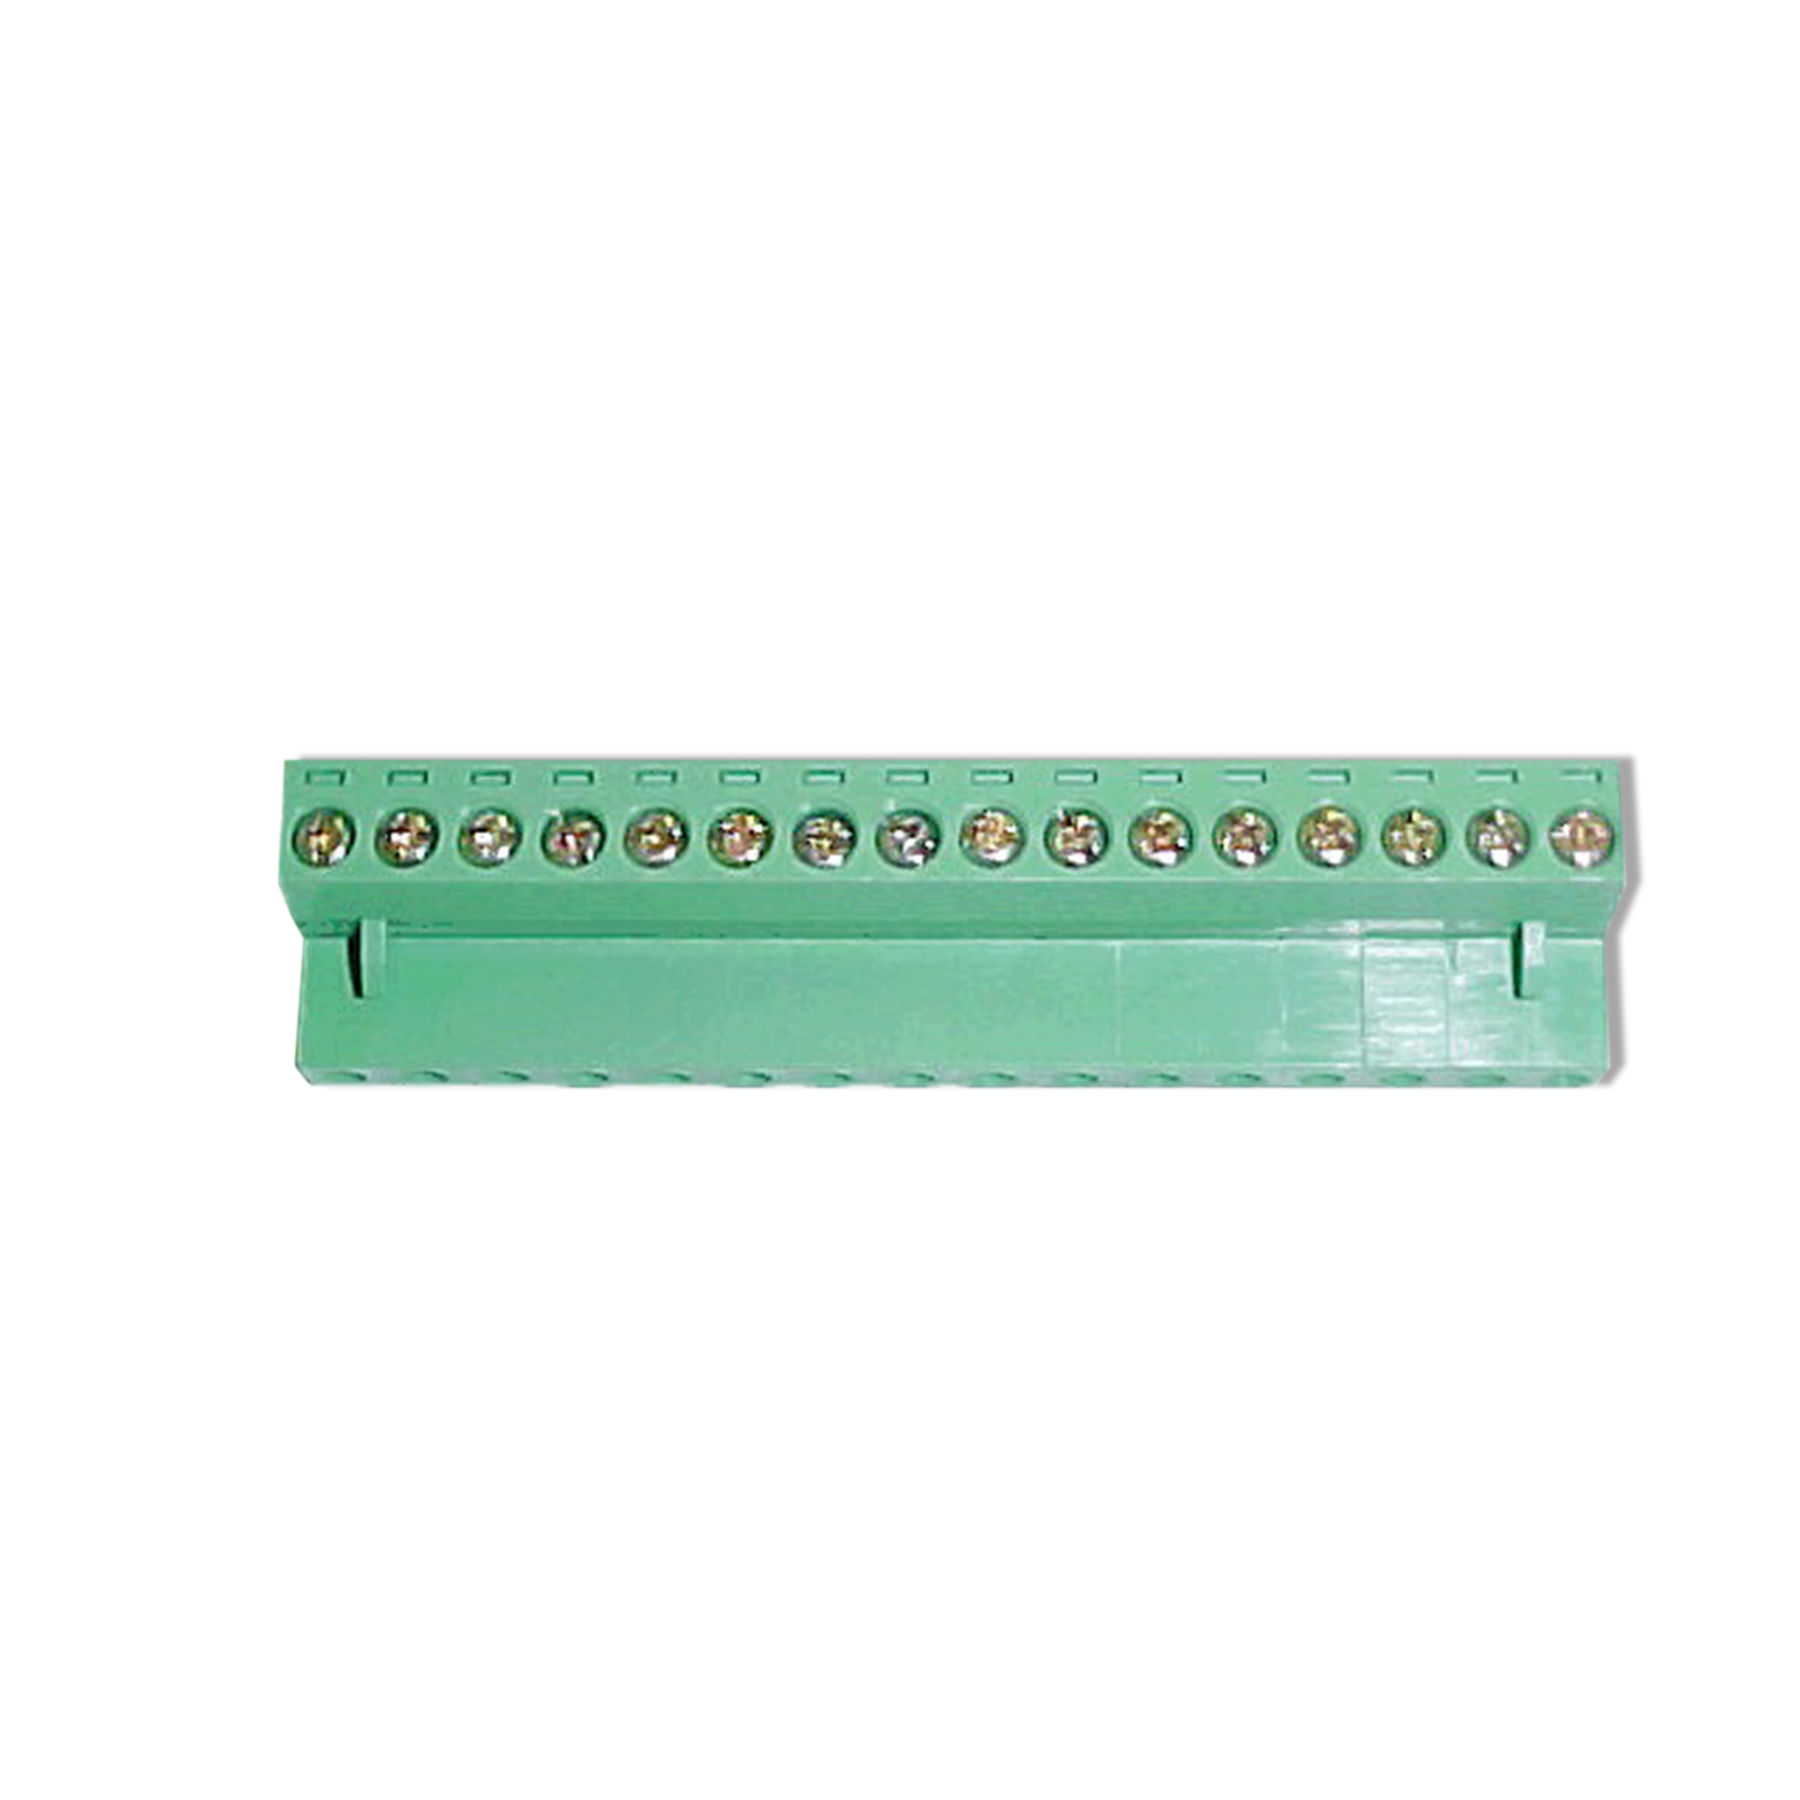 16-Position PC Board Terminal Strip